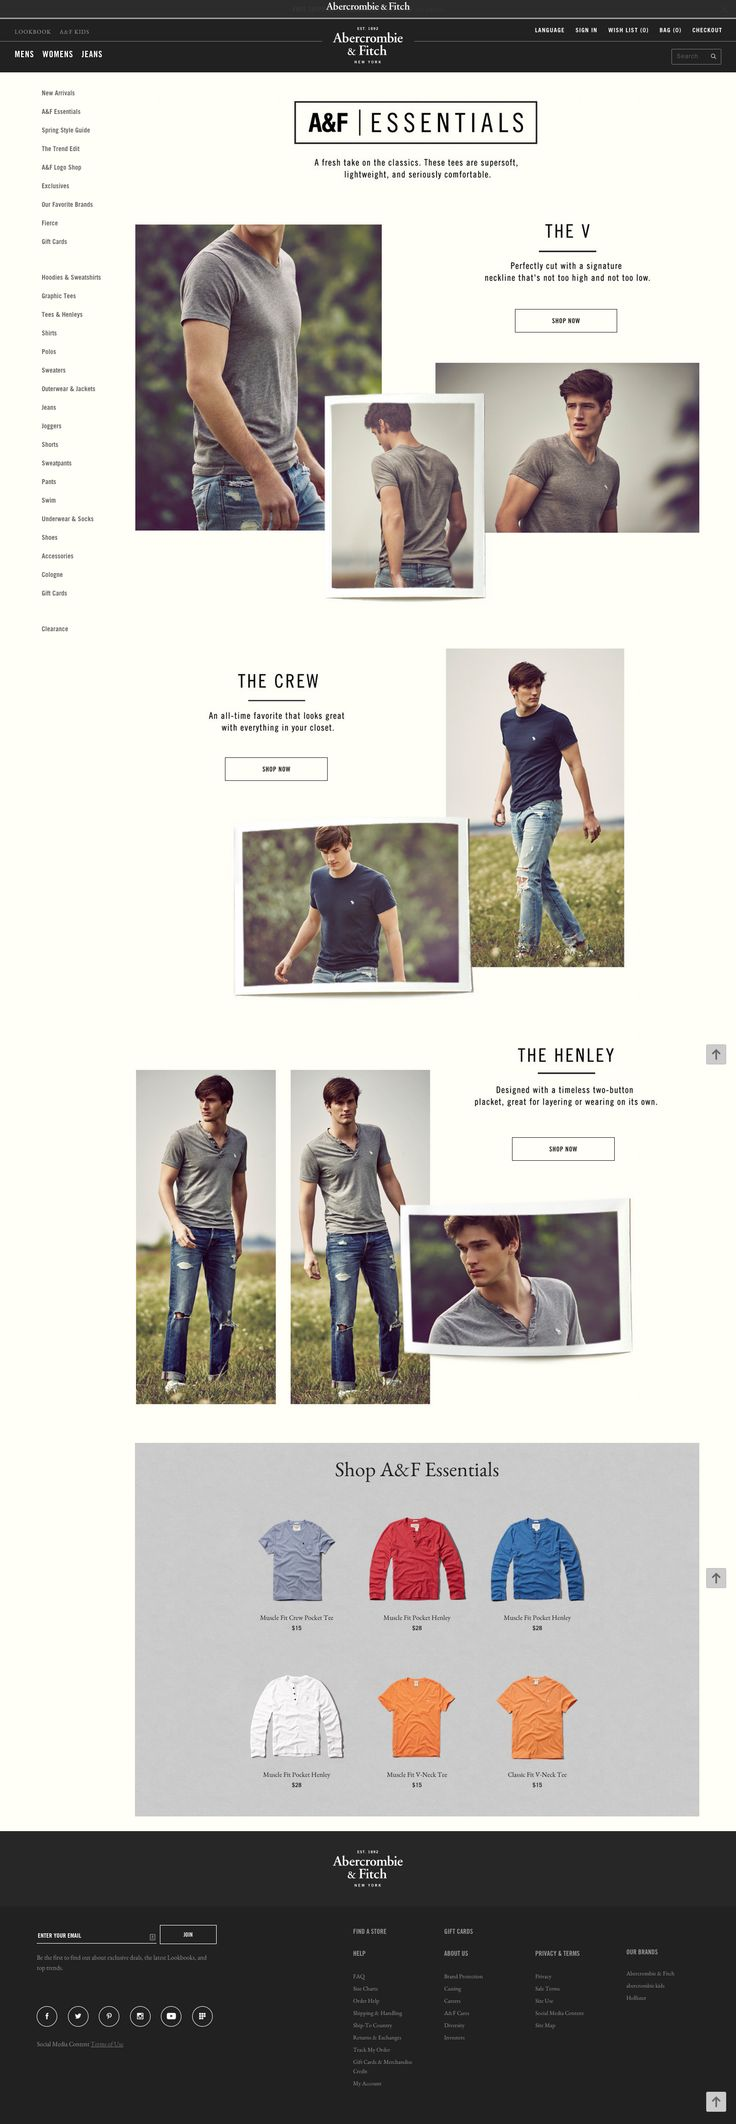 Product Landing (A&F) - flexible layout - specific product listings at btm as CTA